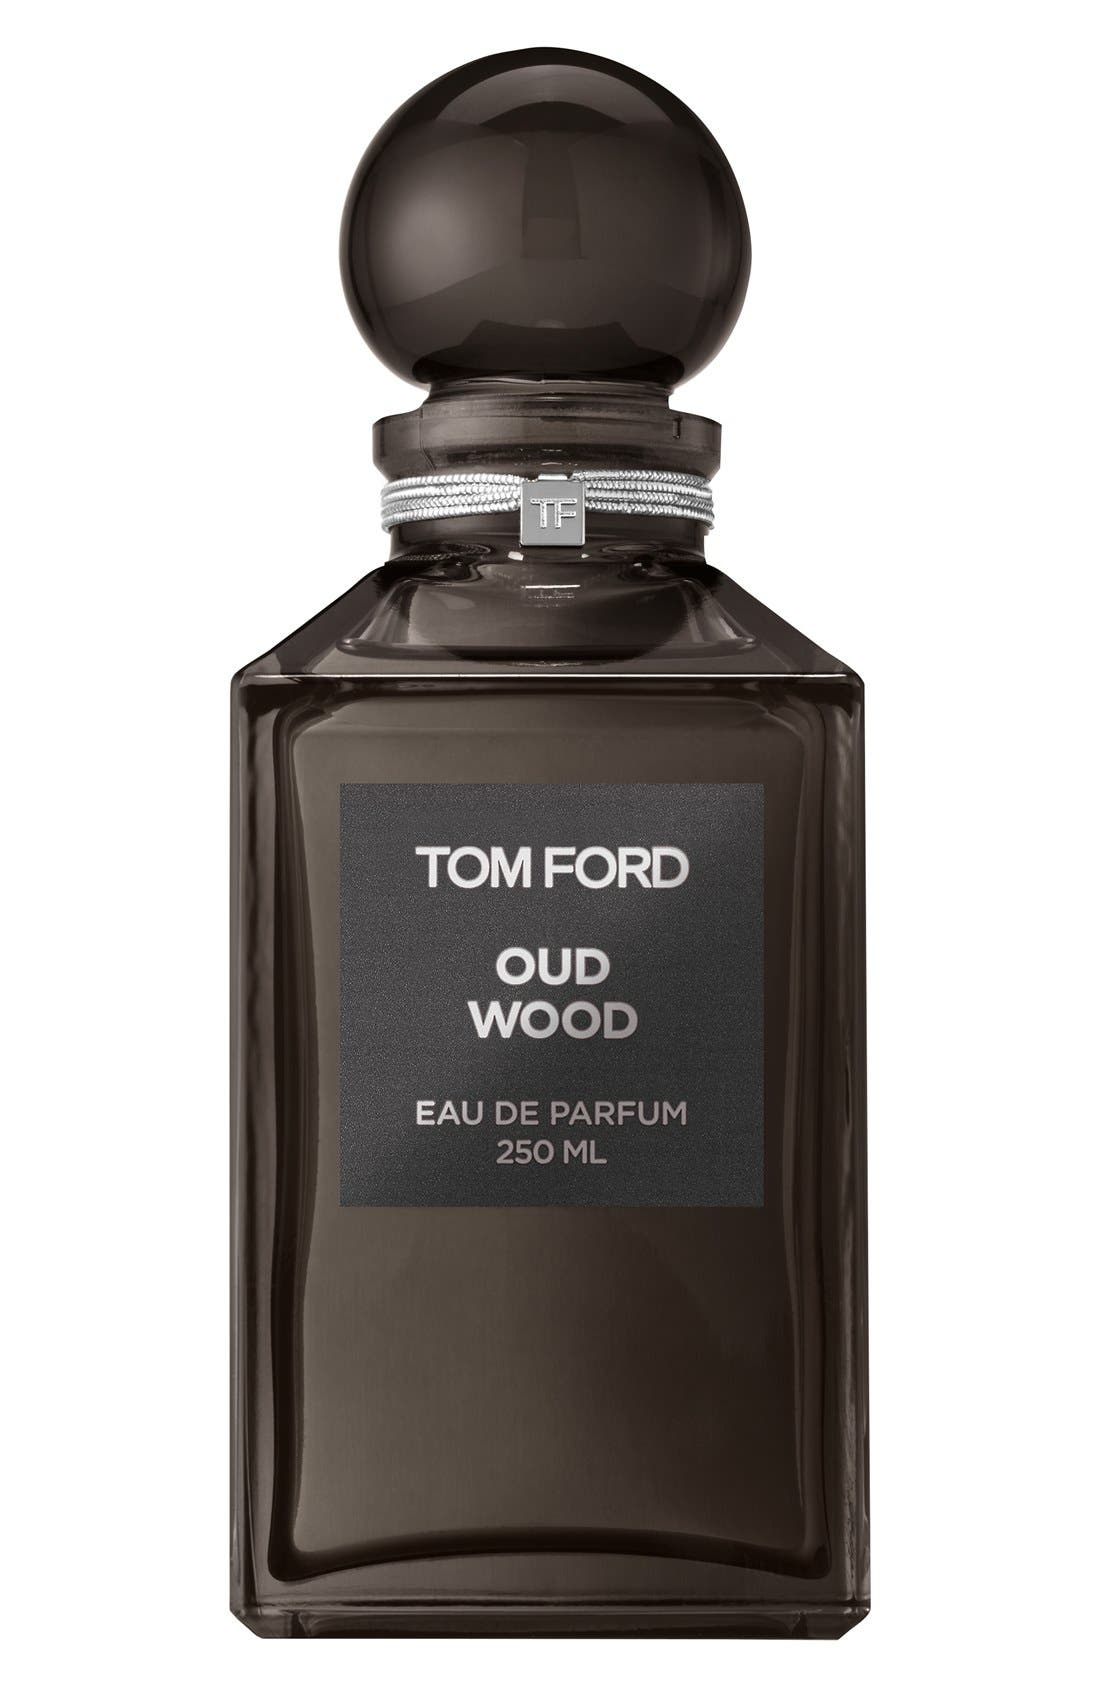 Tom Ford Private Blend Oud Wood Eau de Parfum Decanter